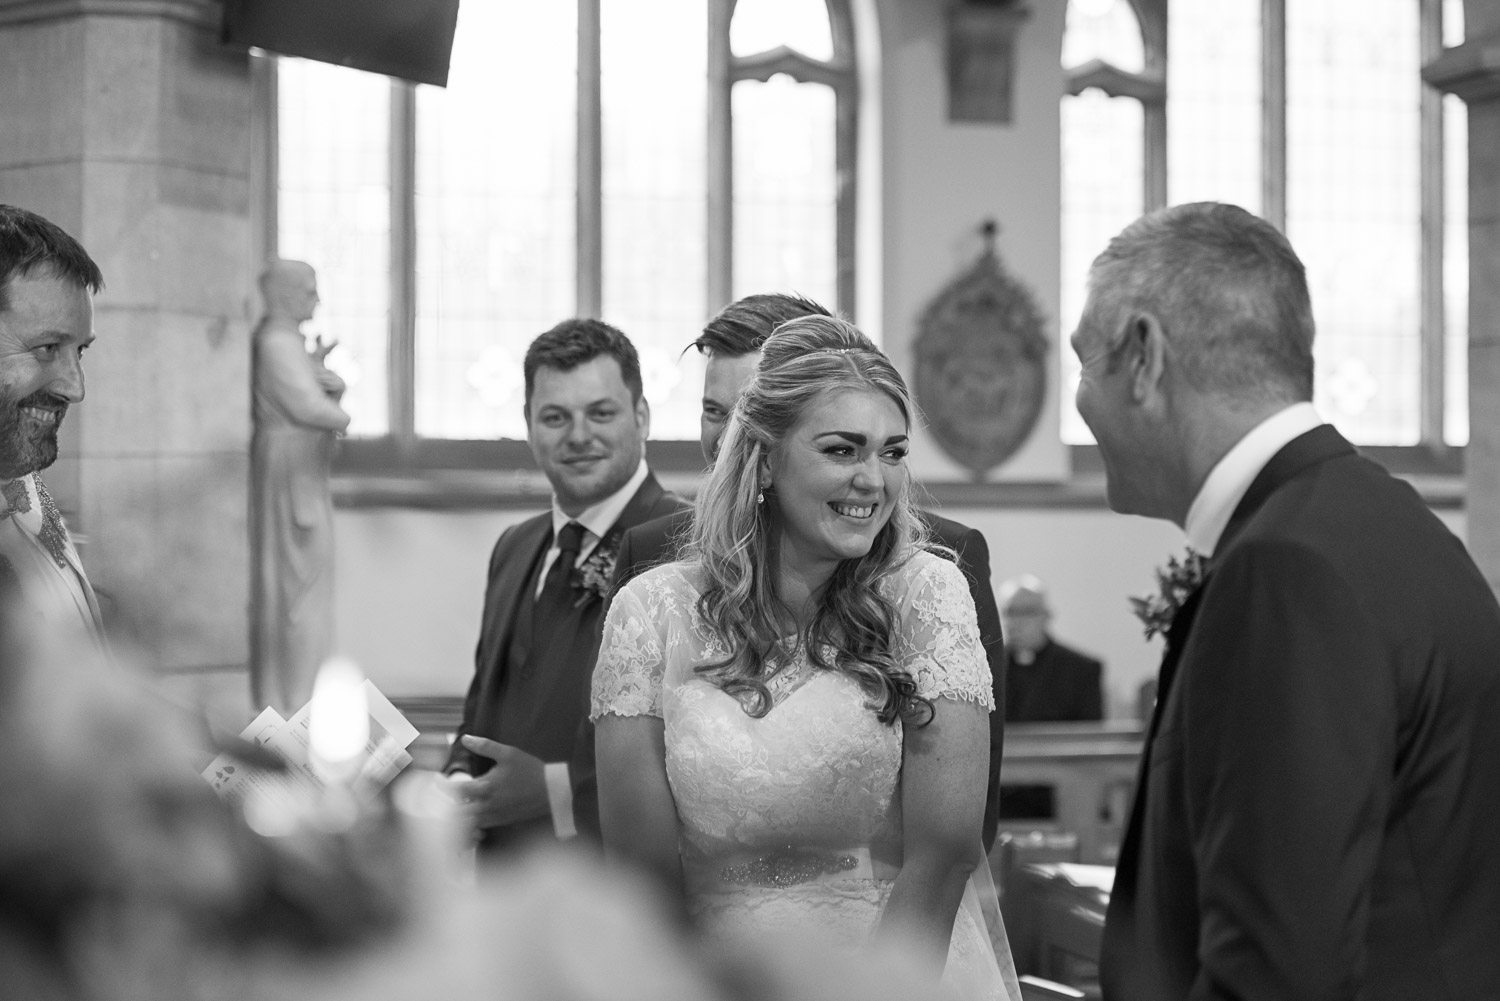 weddings-at-st-john-fisher-church-©gemmasuckleyphotography.JPG